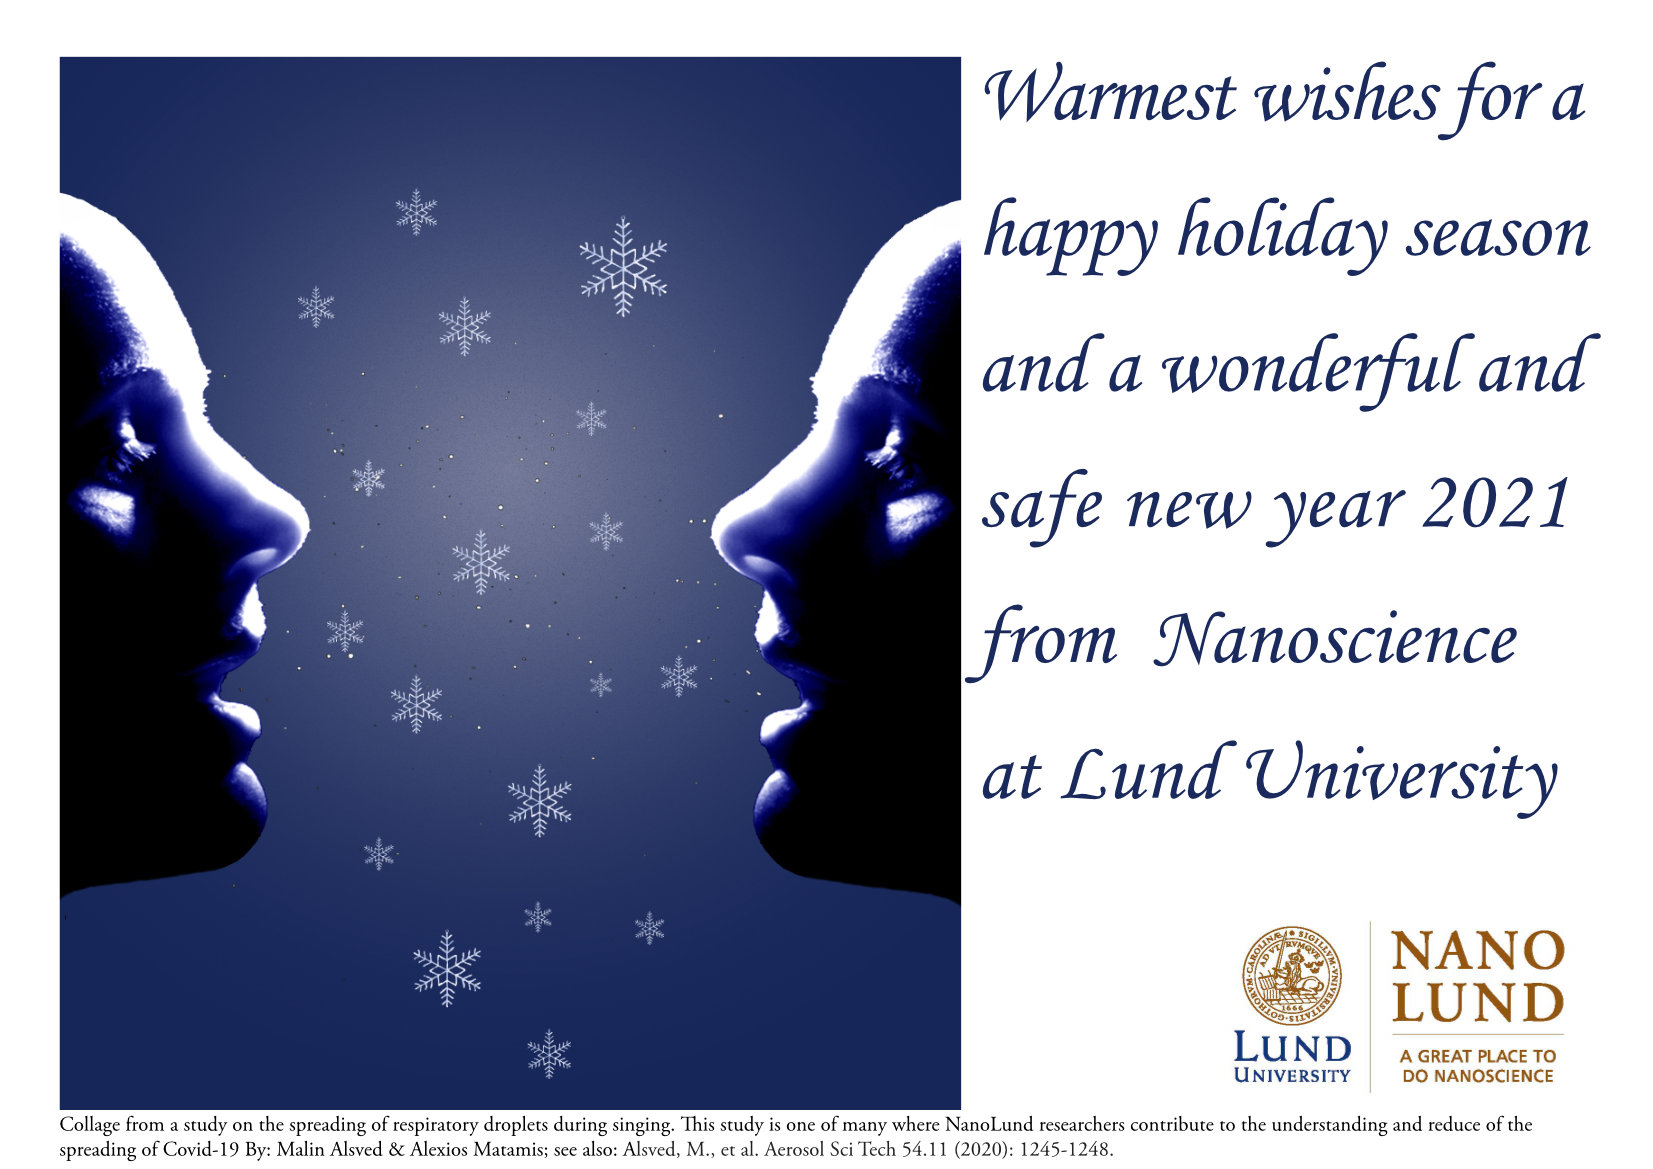 2020 Holiday card from NanoLund